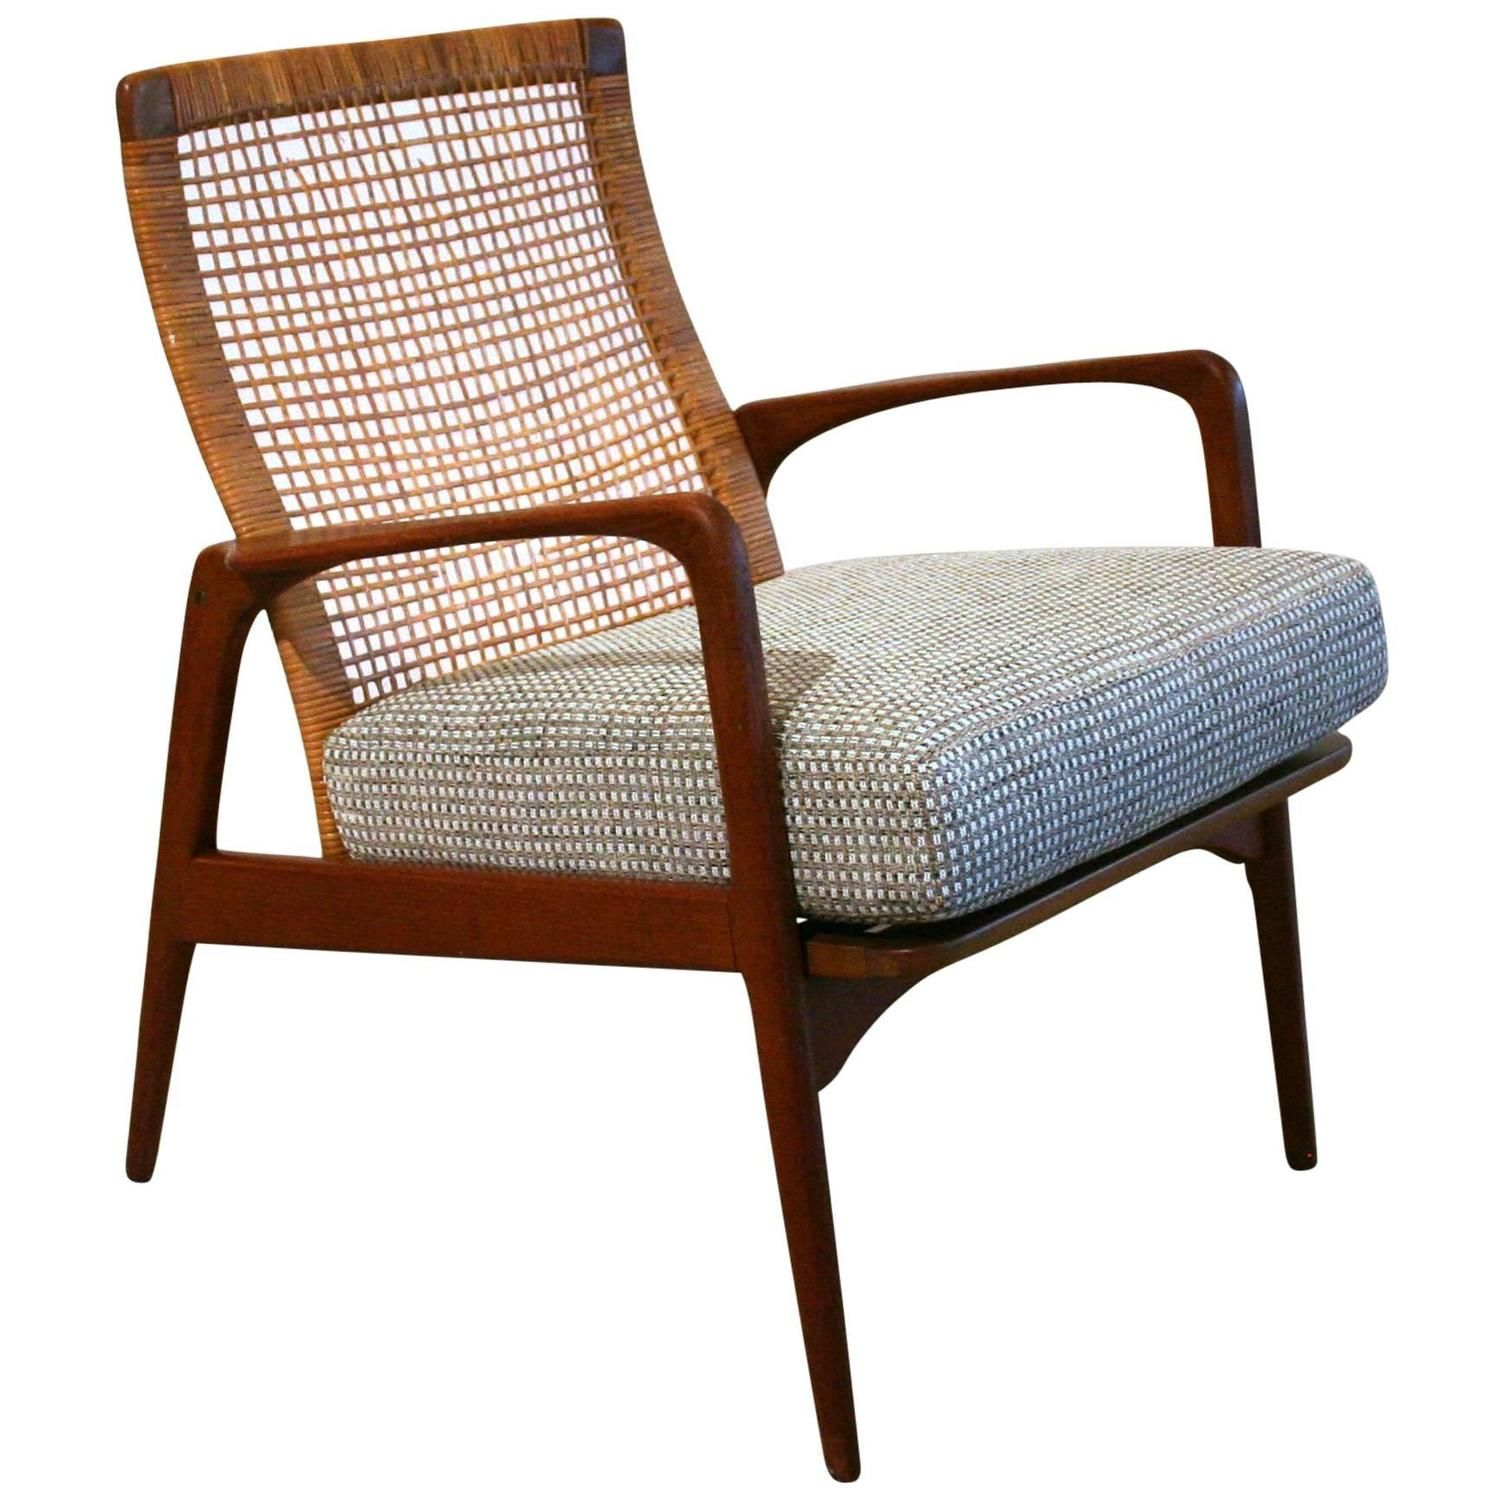 Vintage Danish Teak And Cane Lounge Chair 1stdibs Com Chair Vintage Lounge Chair Wooden Armchair